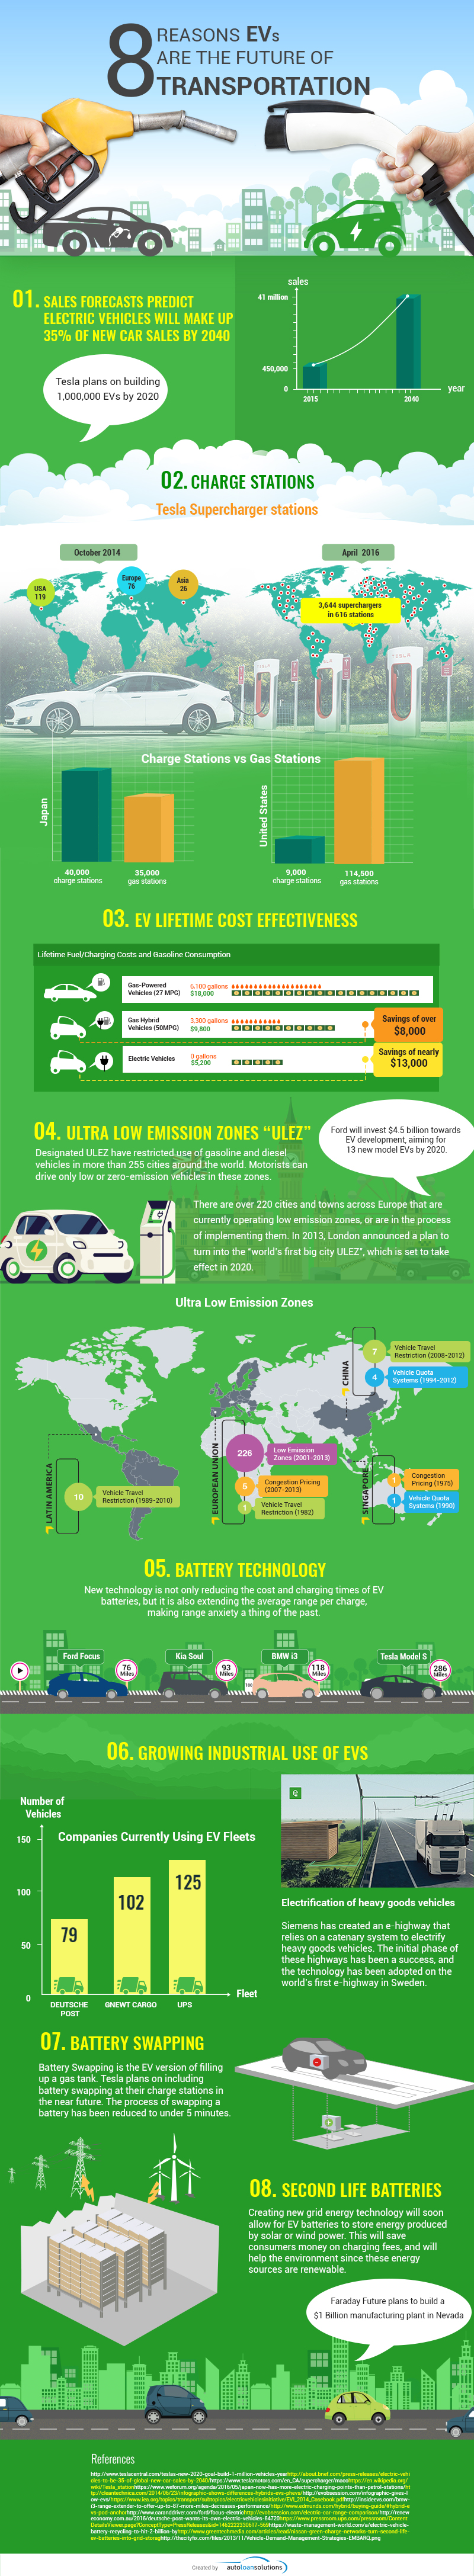 Why Evs Are the Future of Transportation